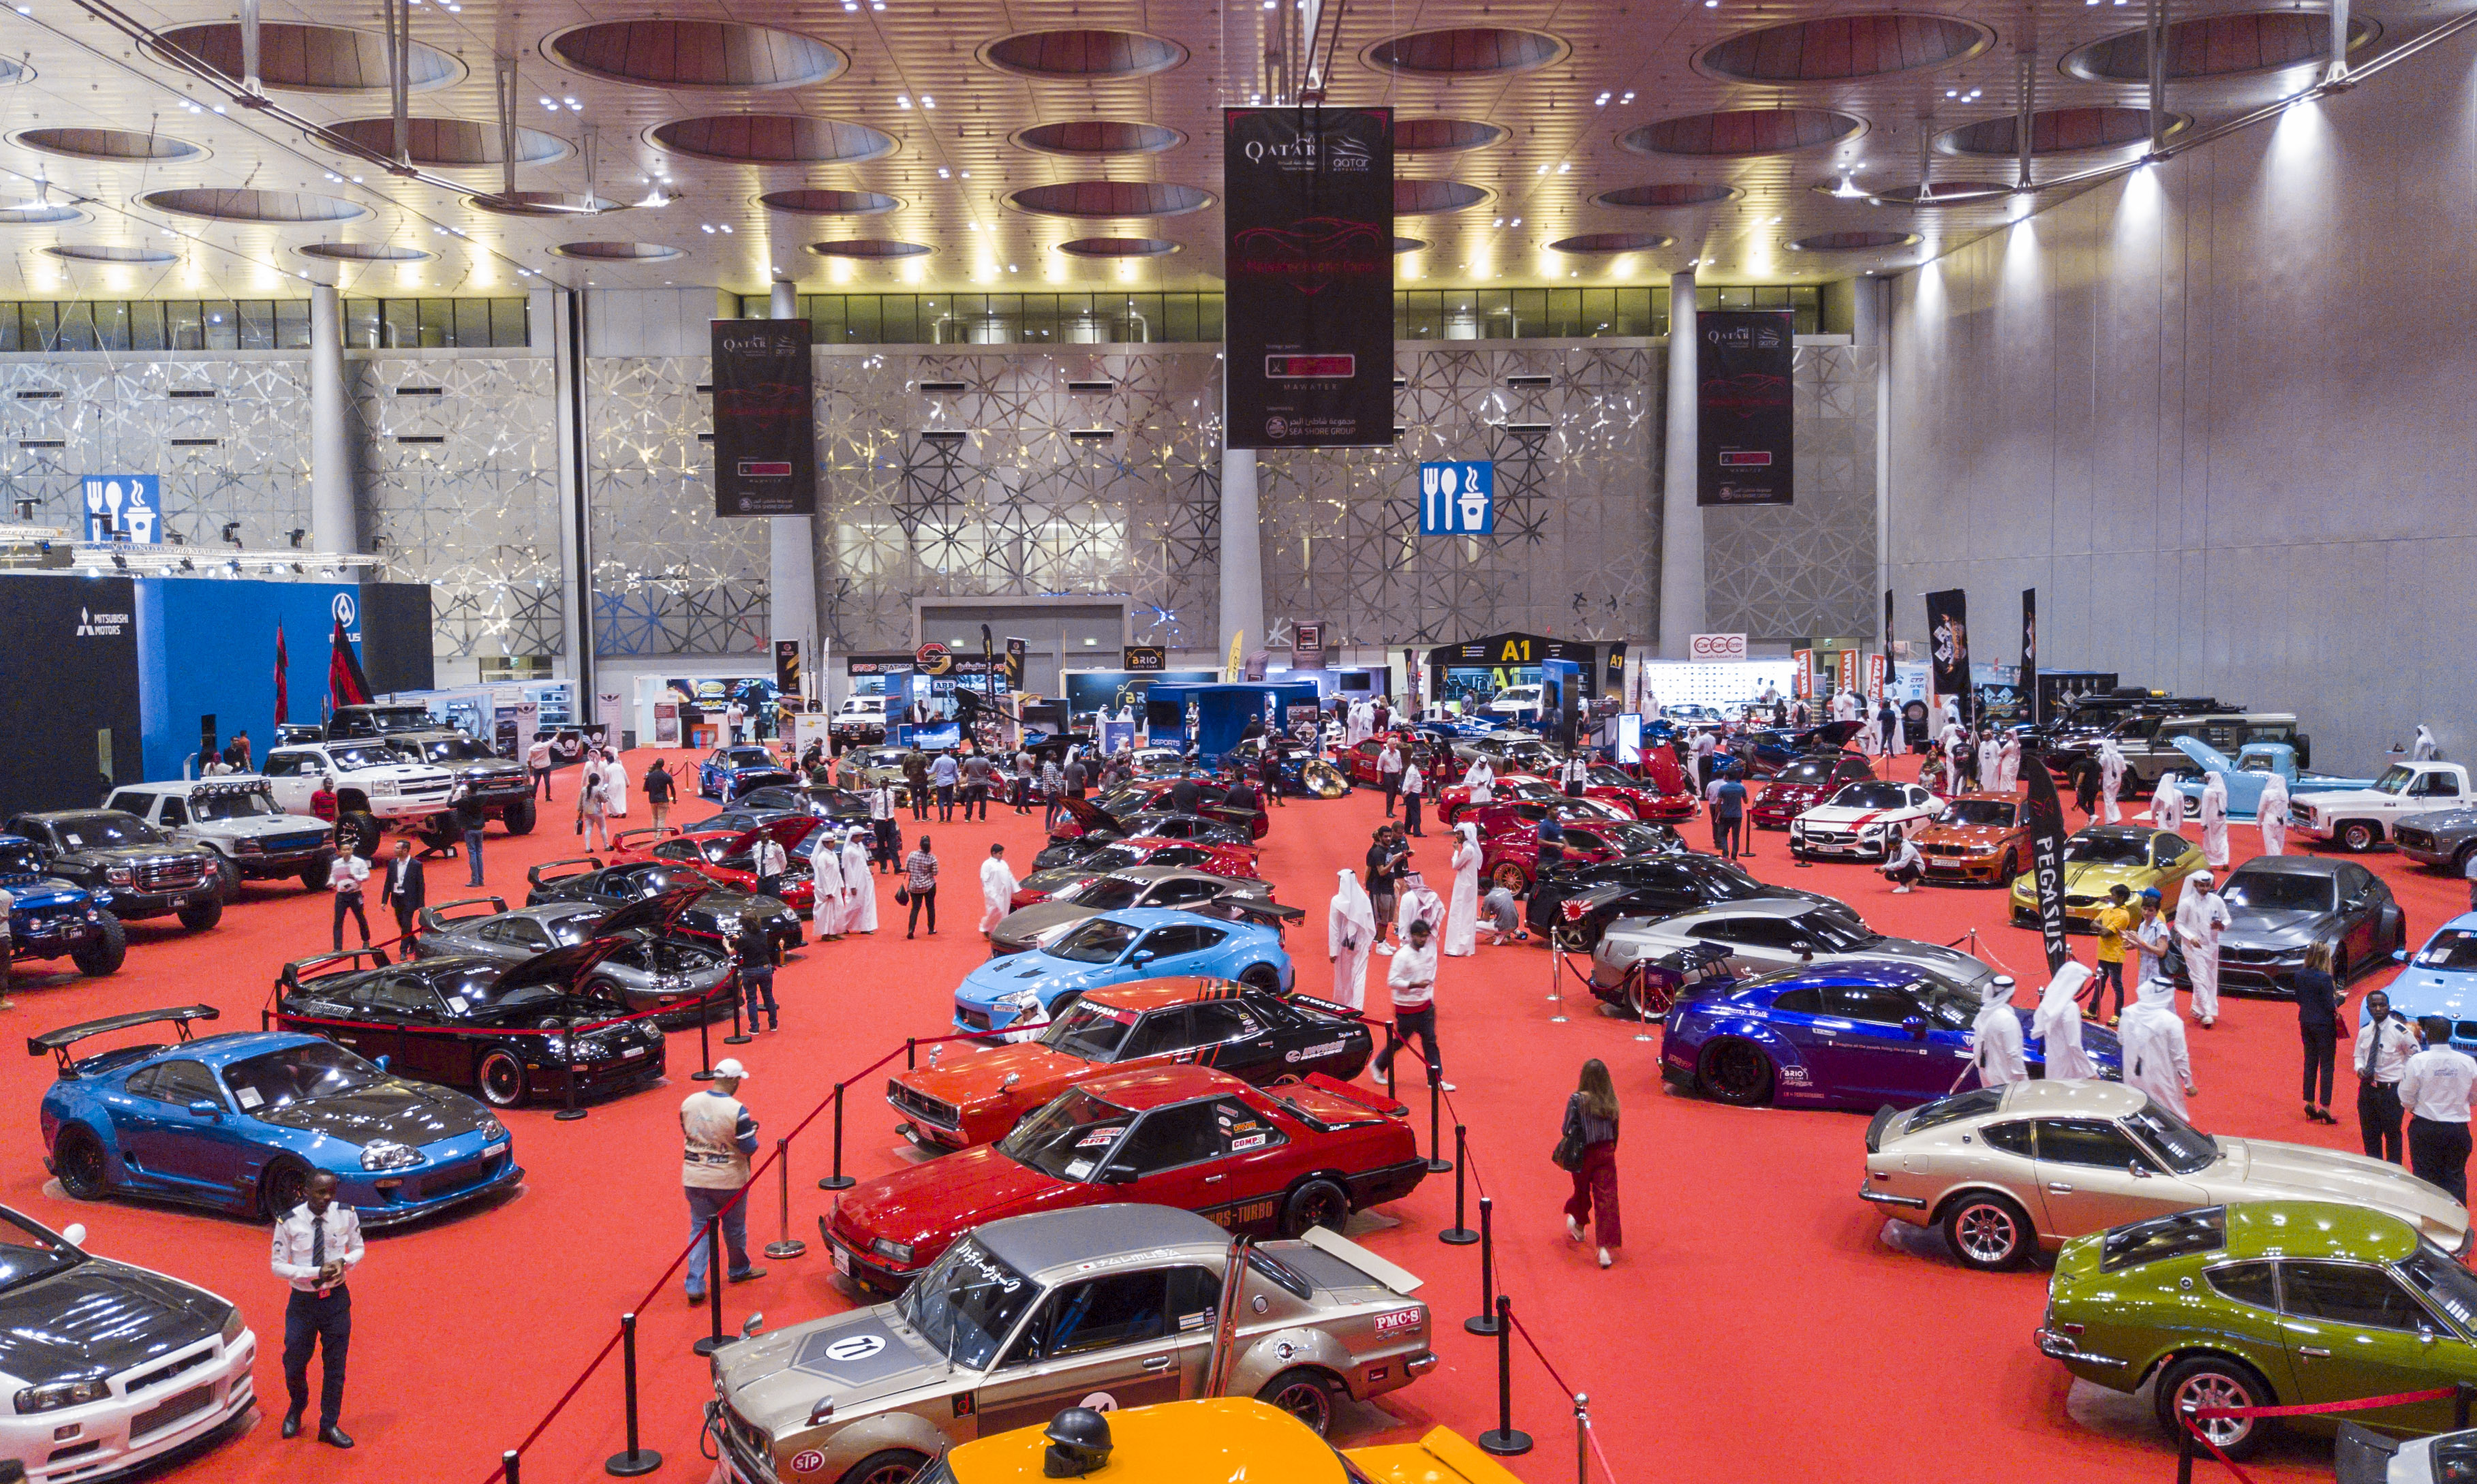 Mawater's Classic & Modified cars Enrich QMS Visitors' Experience